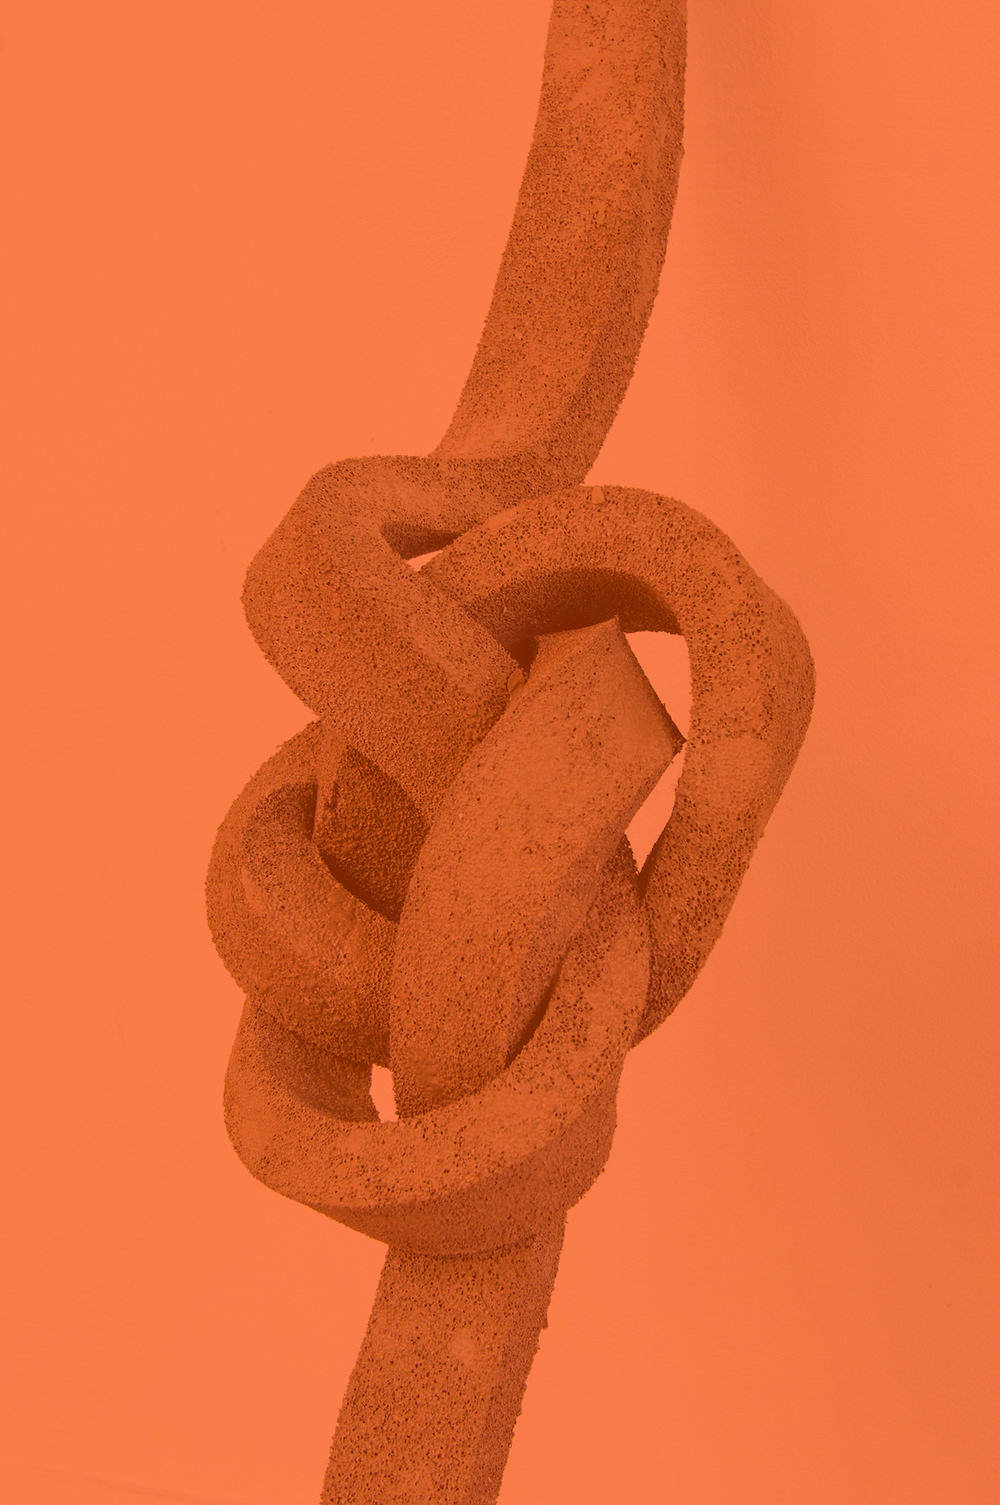 Knot with Colour Overlay ORANGE.jpg